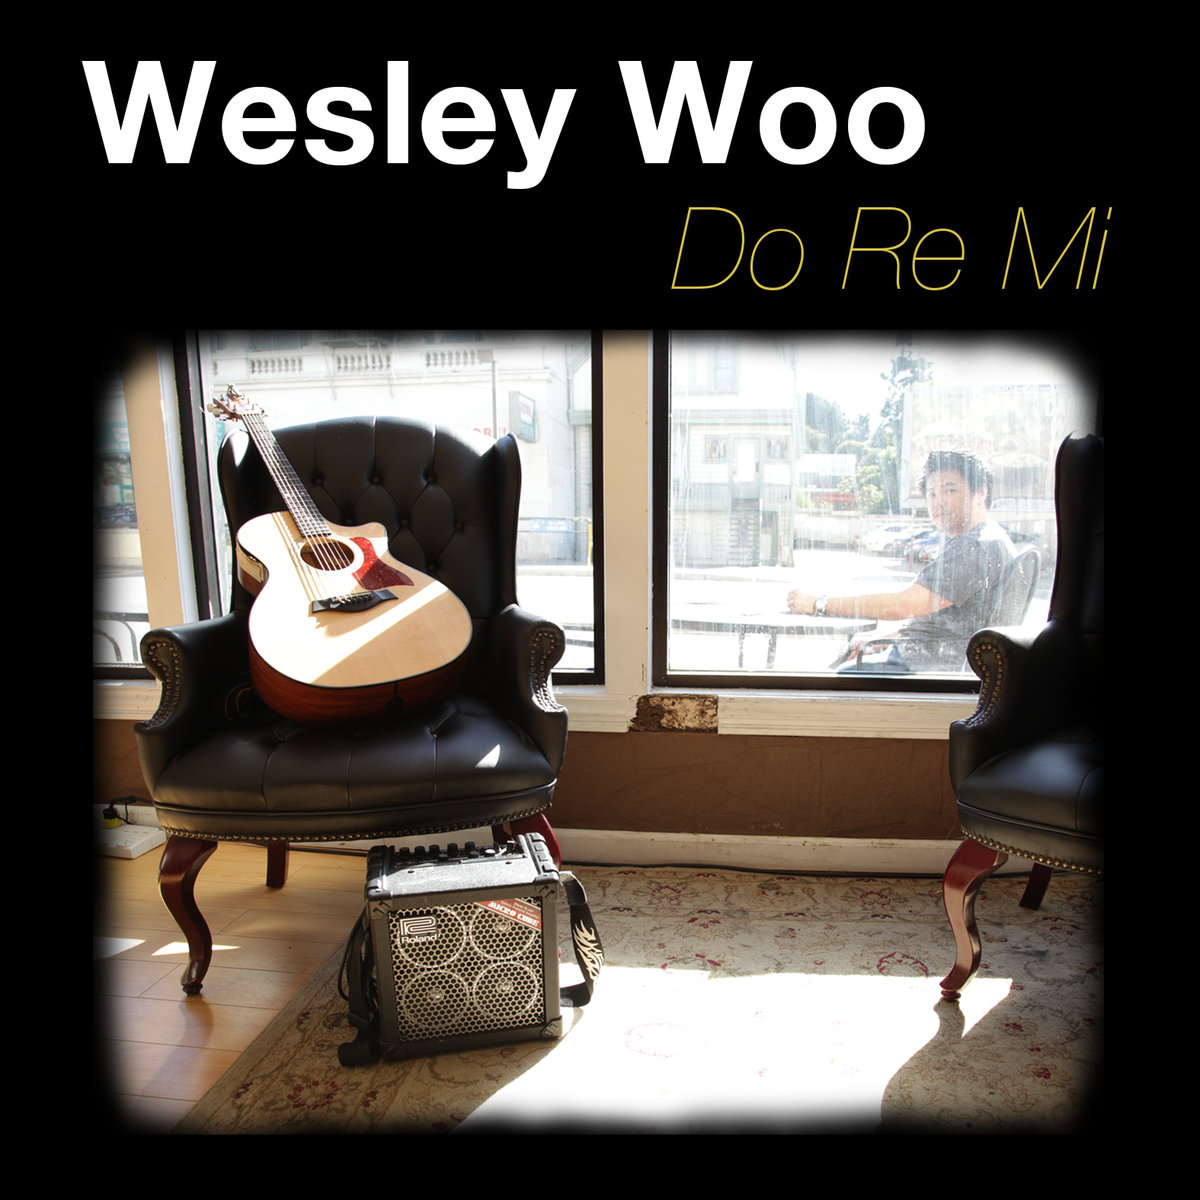 Wesley Woo - Read Between Your Rhyme @ 'Do Re Mi' album (11th ave records, 11th avenue records)